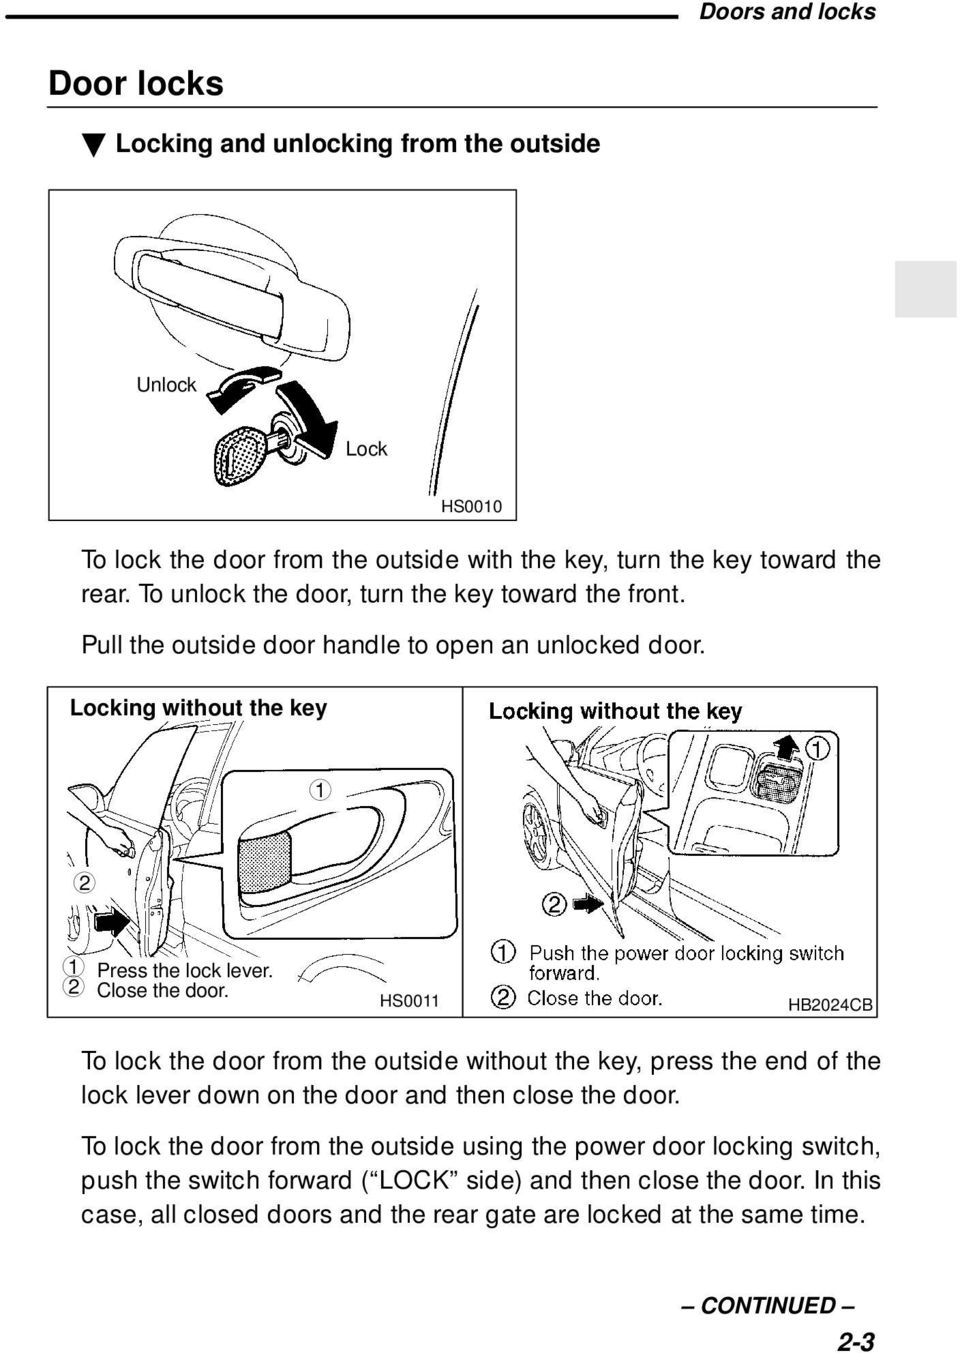 Toyota Corolla Repair Manual: All door lock and unlock do not operate by themaster switch or the driver's door key